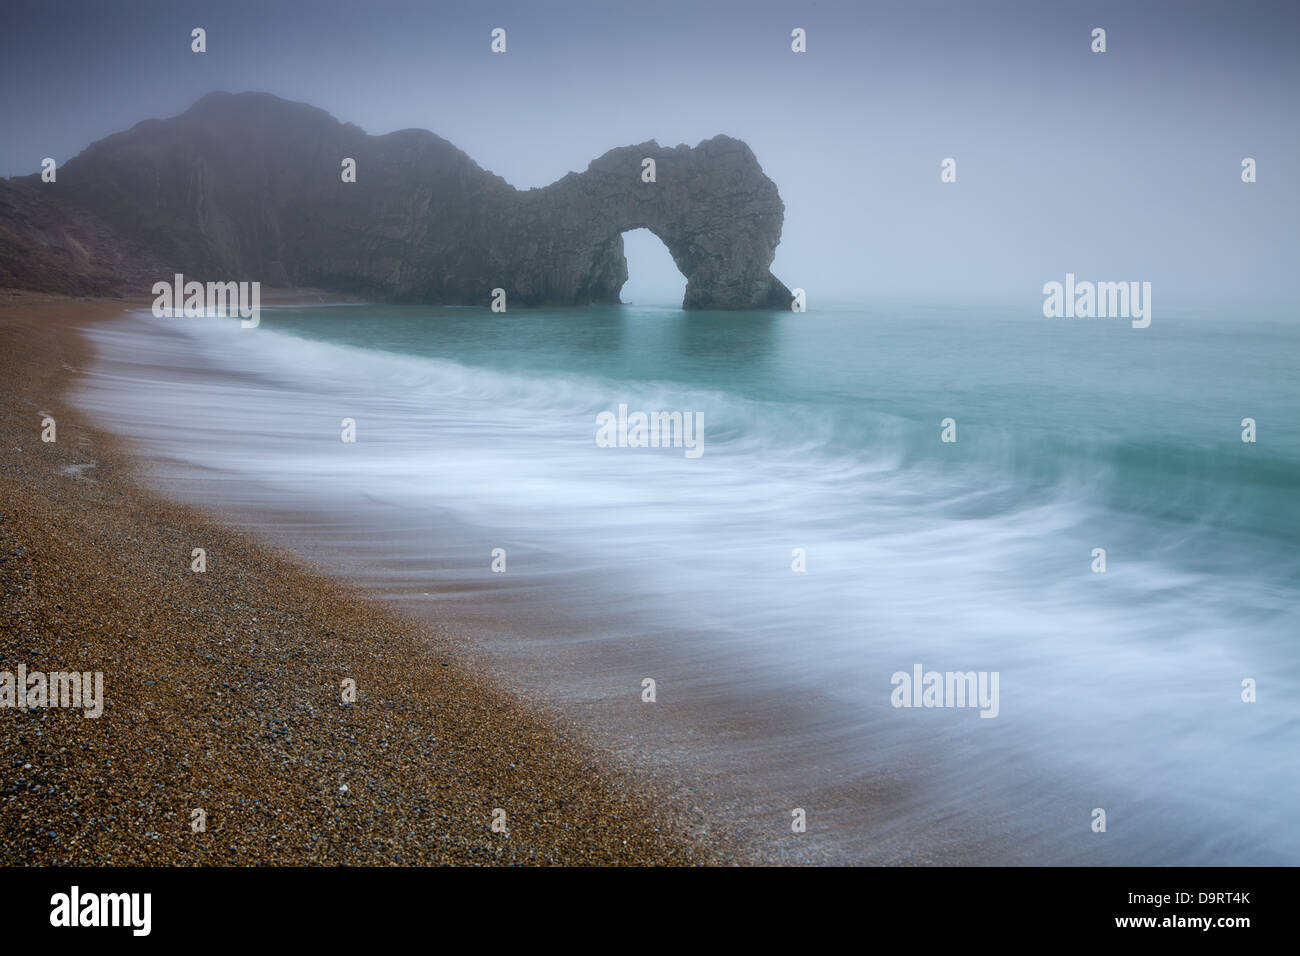 Durdle Door, Jurassic Coast, Dorset, England, UK - Stock Image